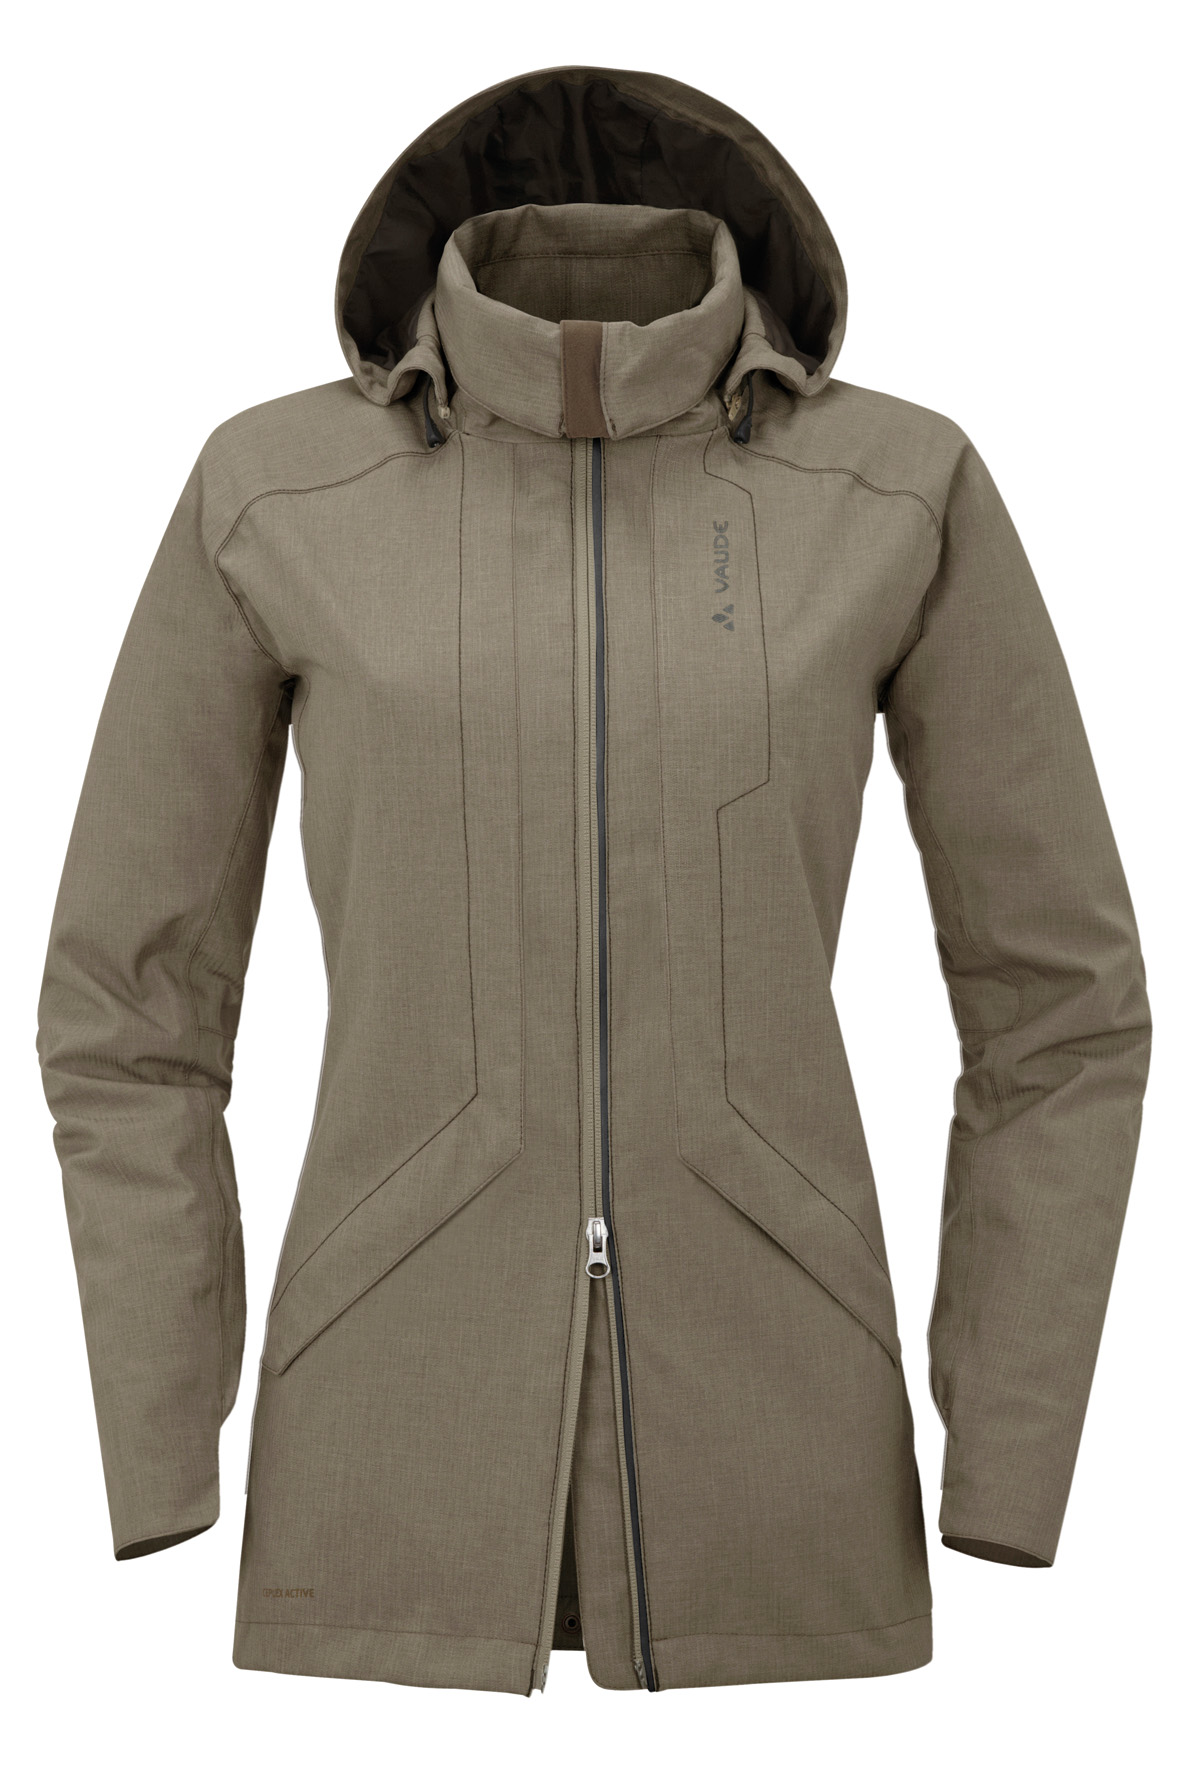 Women´s Homy Padded Jacket maple wood Größe 34 - schneider-sports